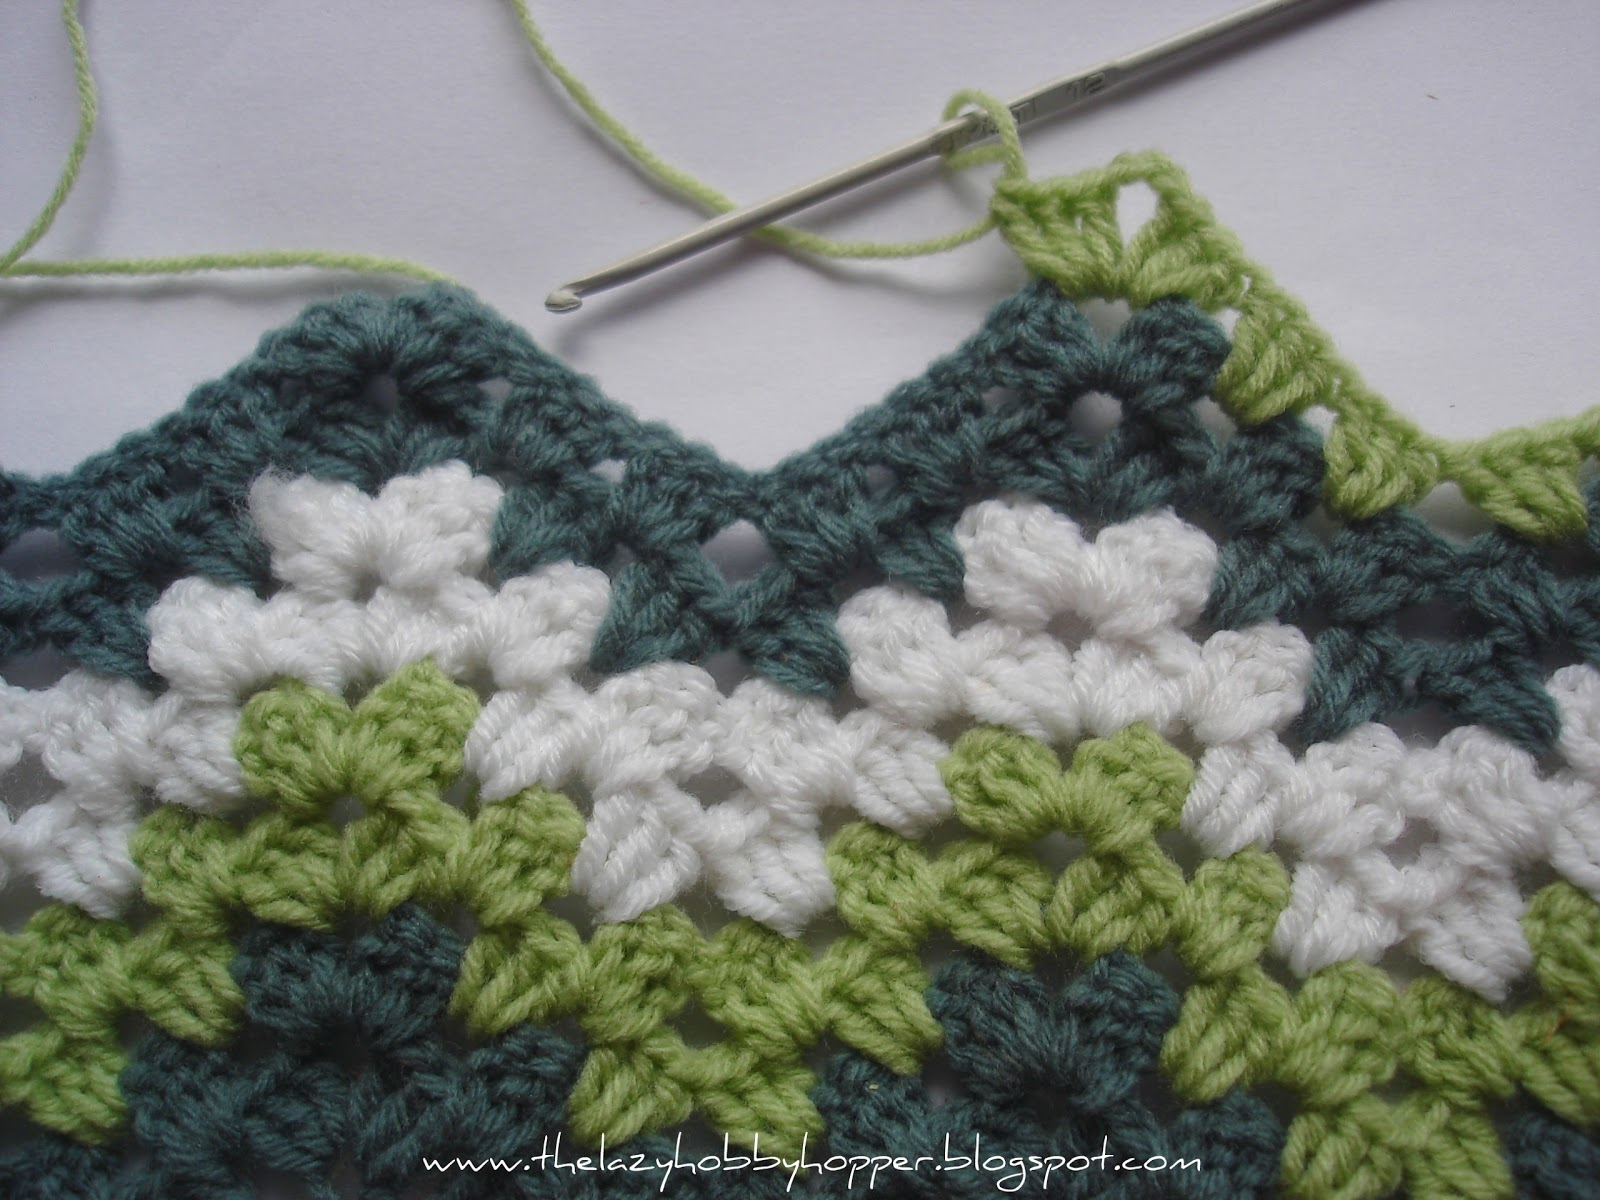 Crochet Patterns How To : ... many of you who can crochet fairly well may not know how to crochet a